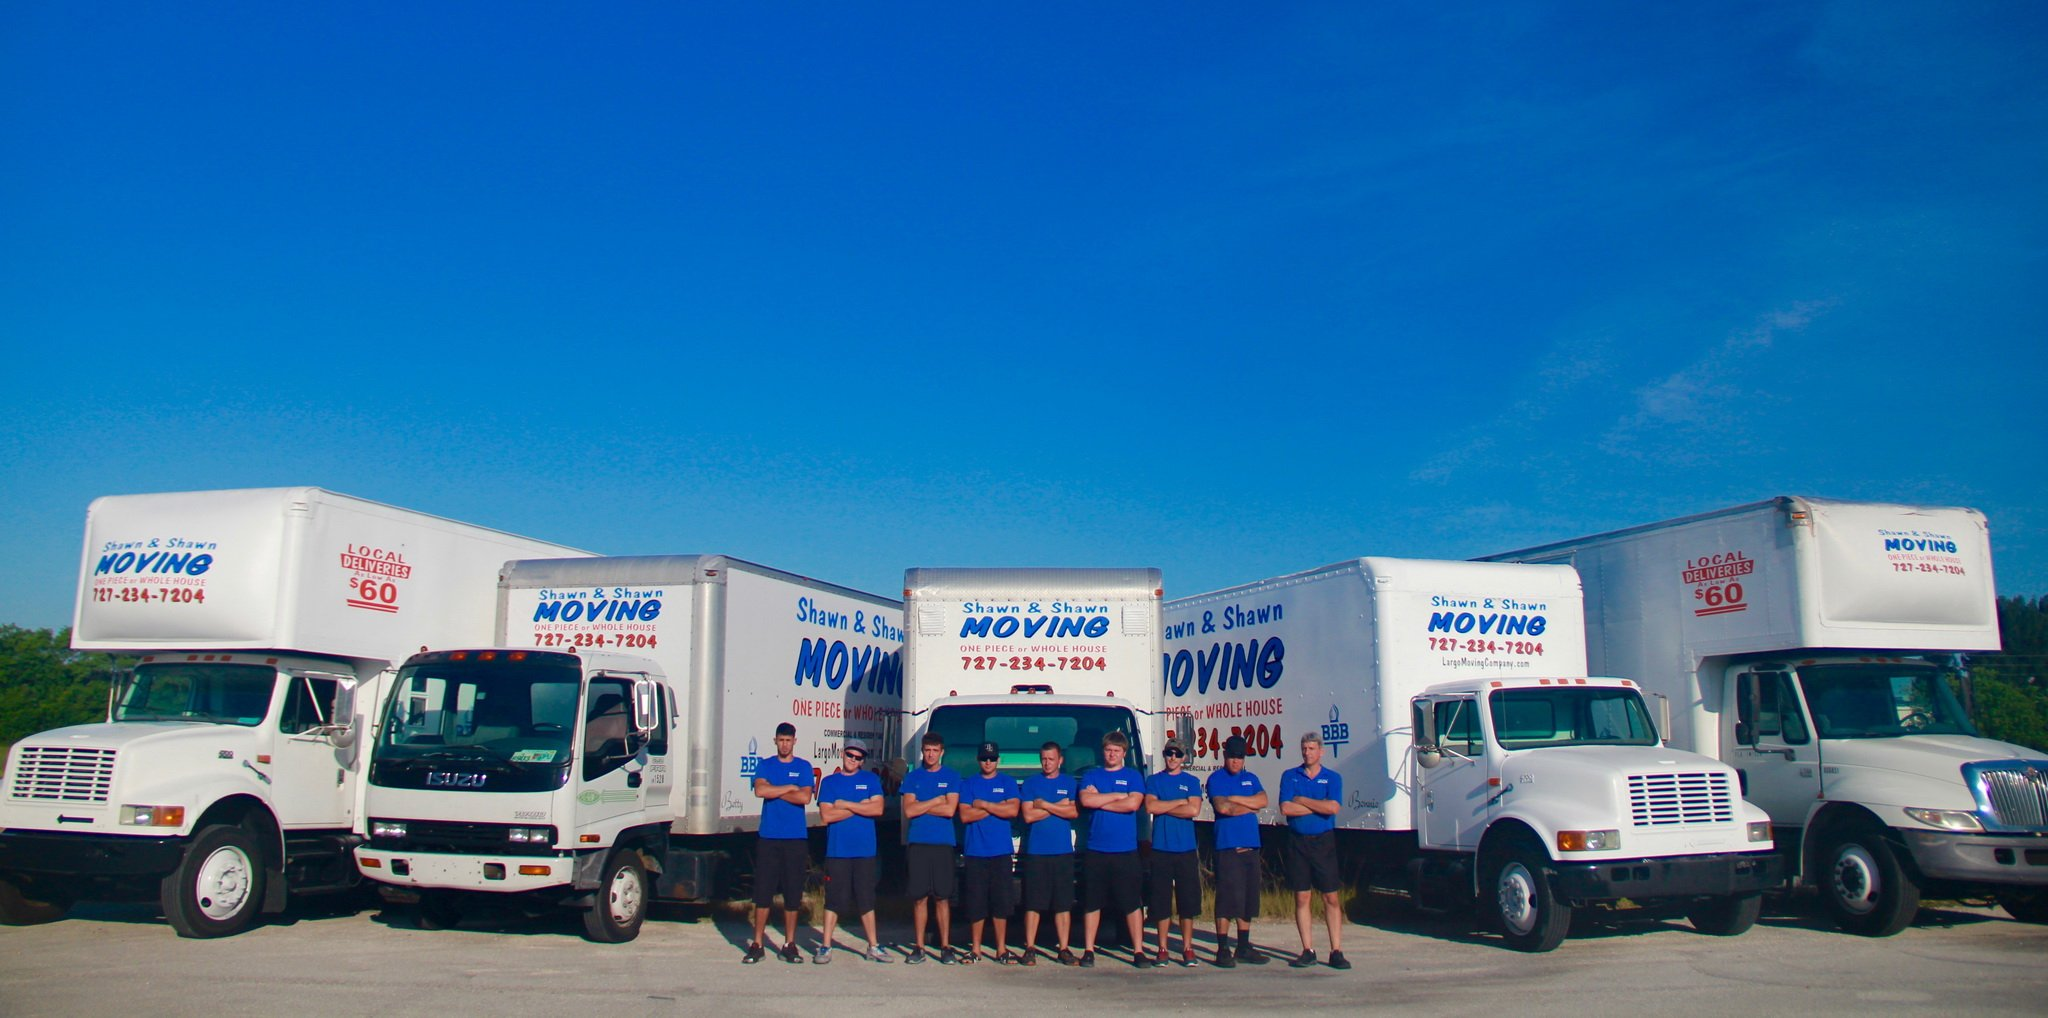 Shawn & Shawn Moving Company | PInellas County, Florida Movers